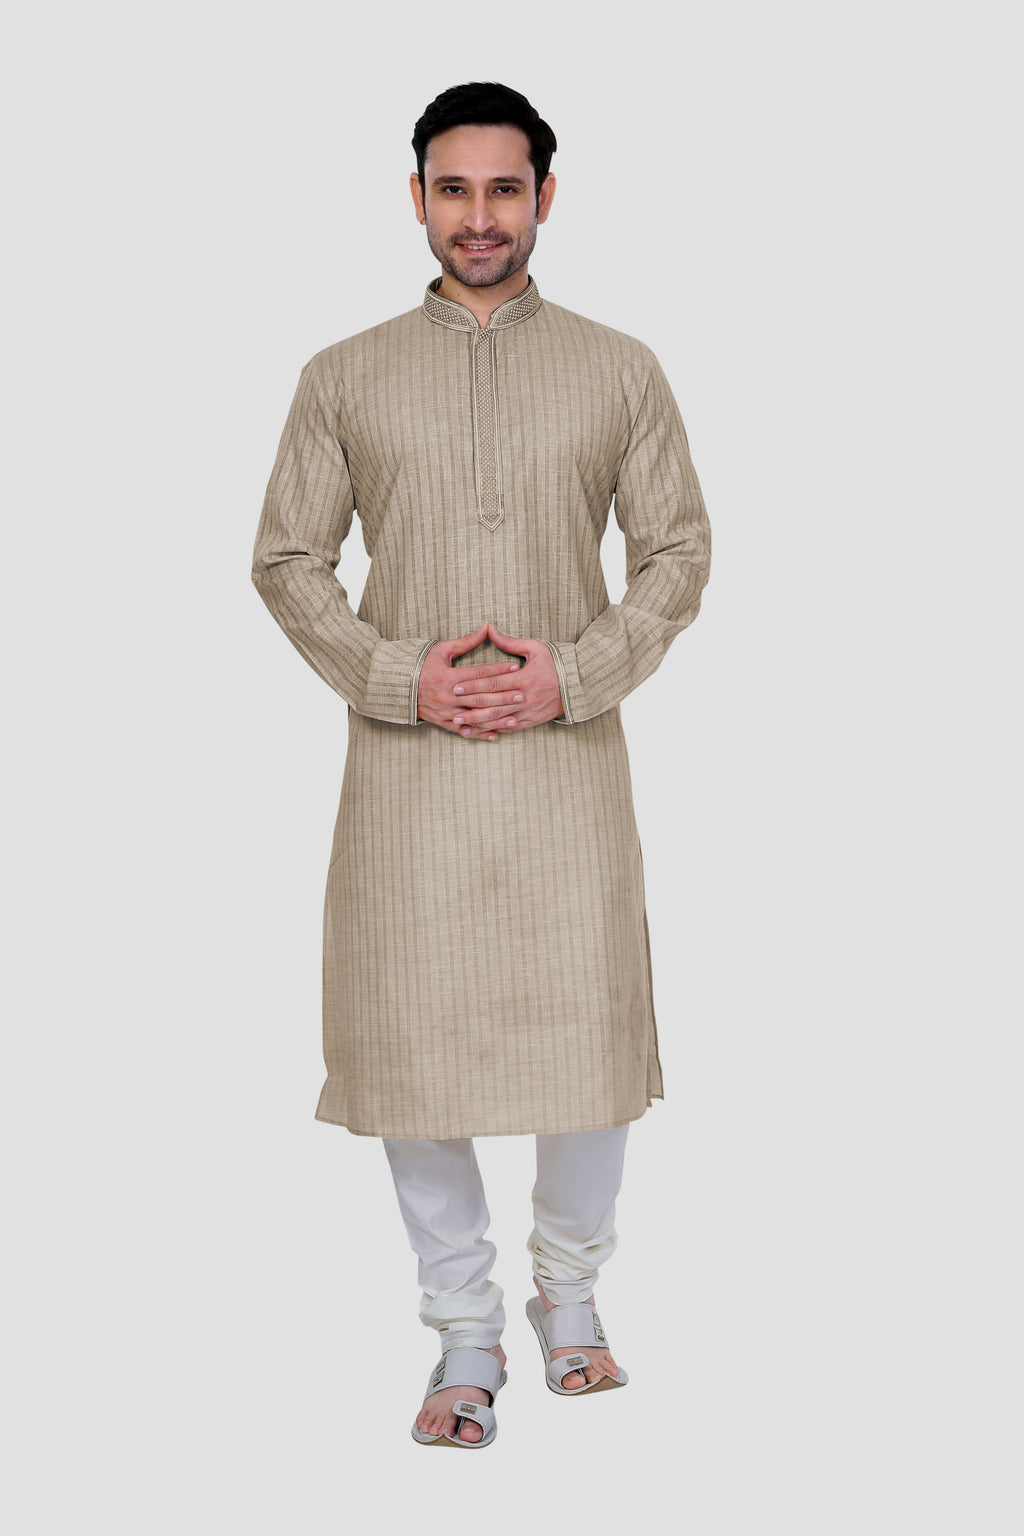 Ethniz- Men's French Macaroon color Kurta with Churidar